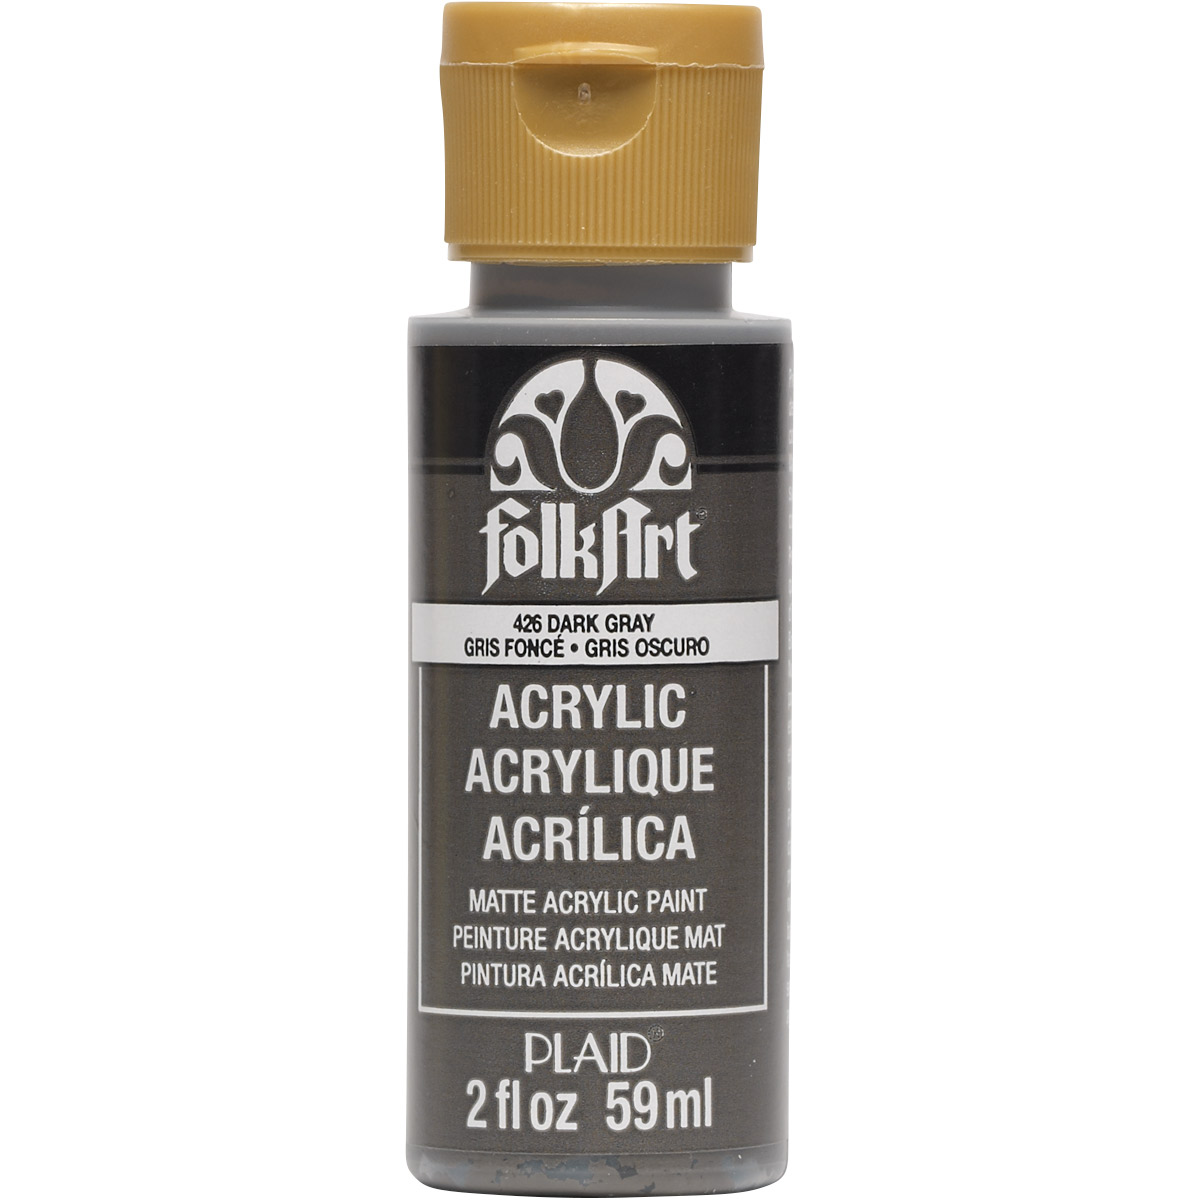 FolkArt ® Acrylic Colors - Dark Gray, 2 oz. - 426